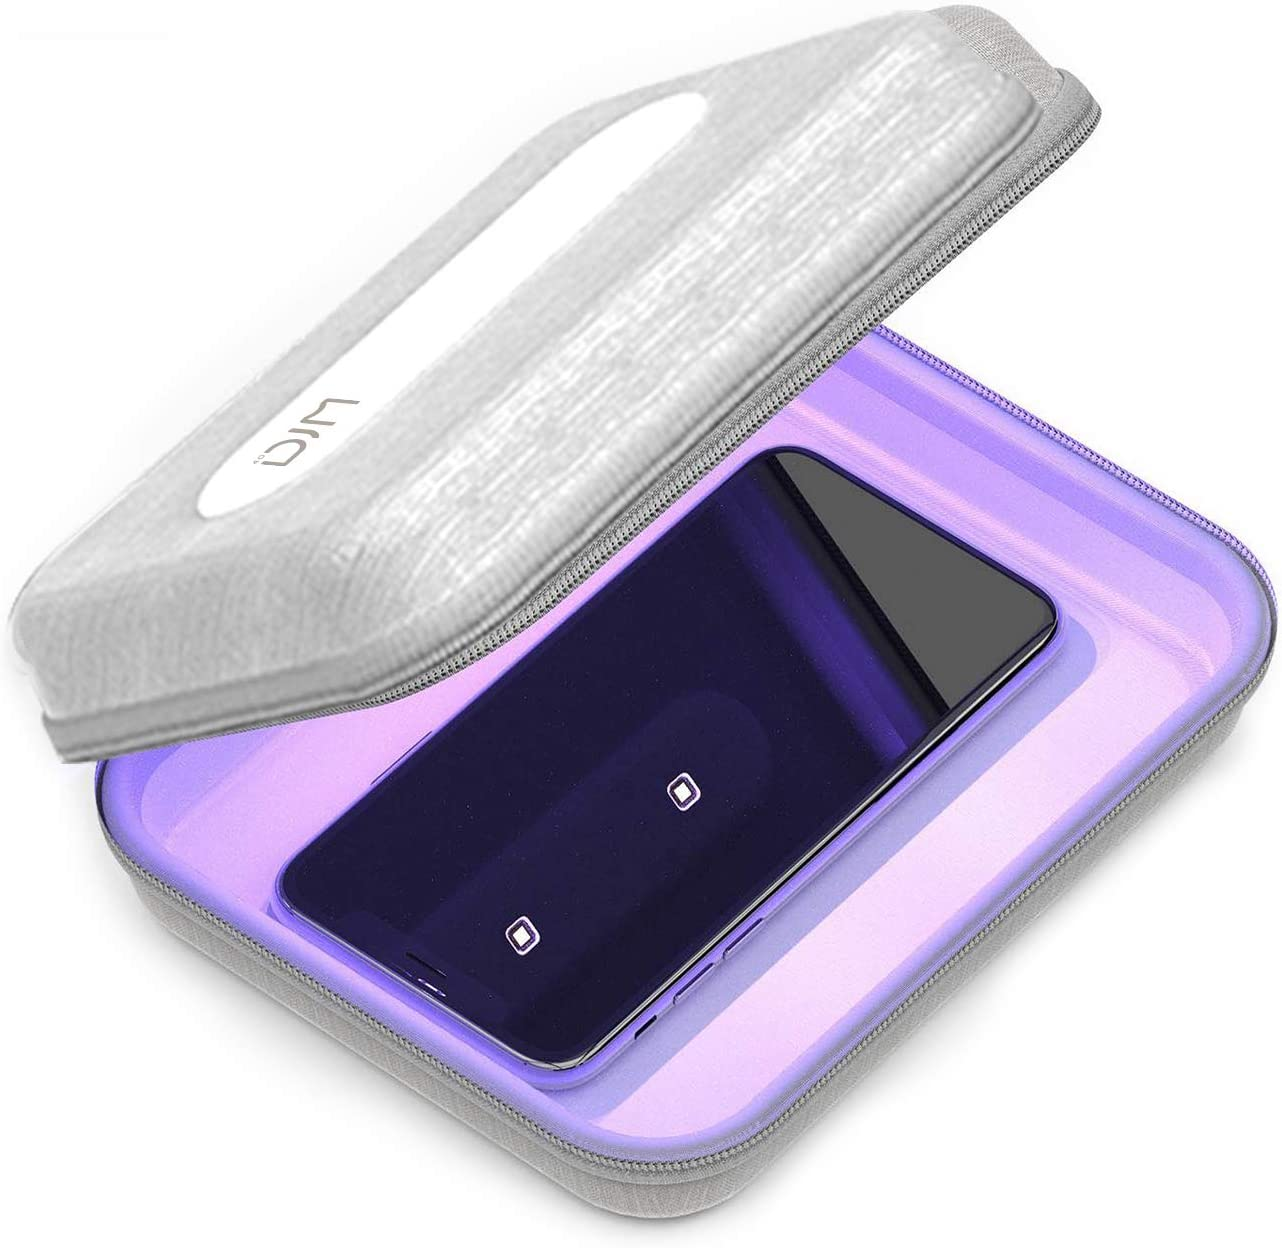 Cell Phone Soap Portable Cell Phone Bag Cell Phone for iOS Android Smartphones Jewelry Watch